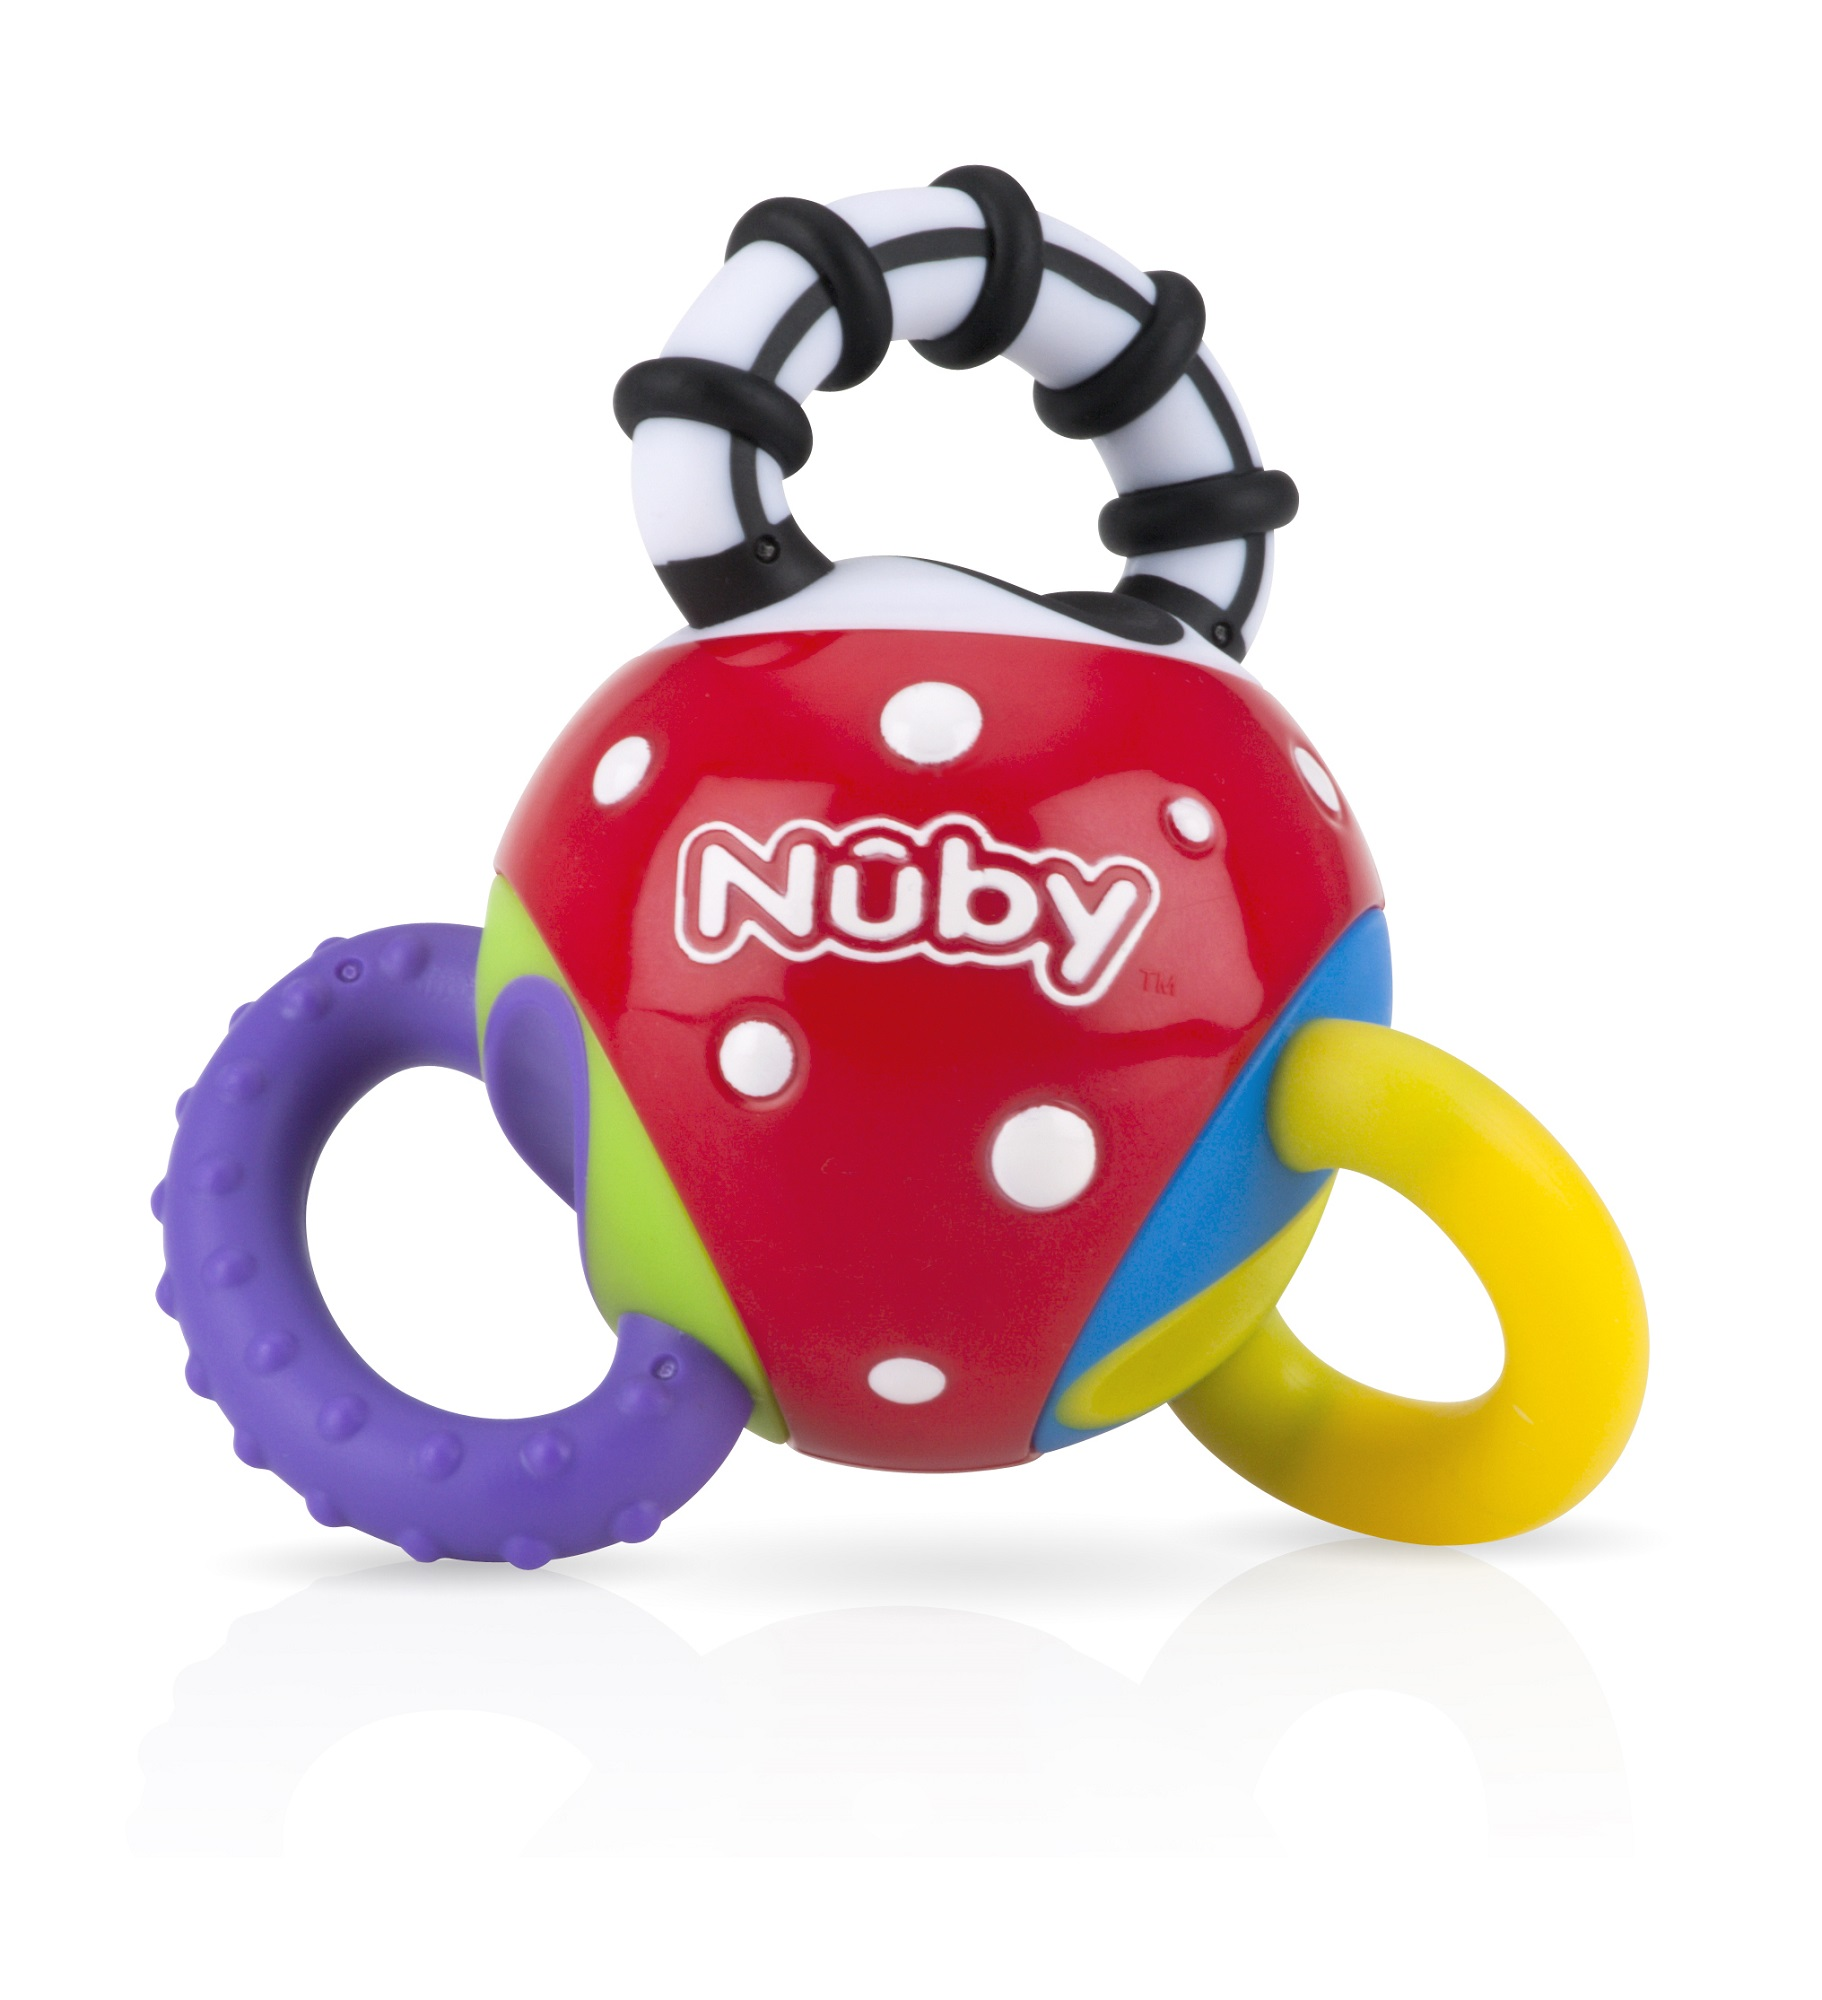 Nuby Twista Ball Teether and Toy